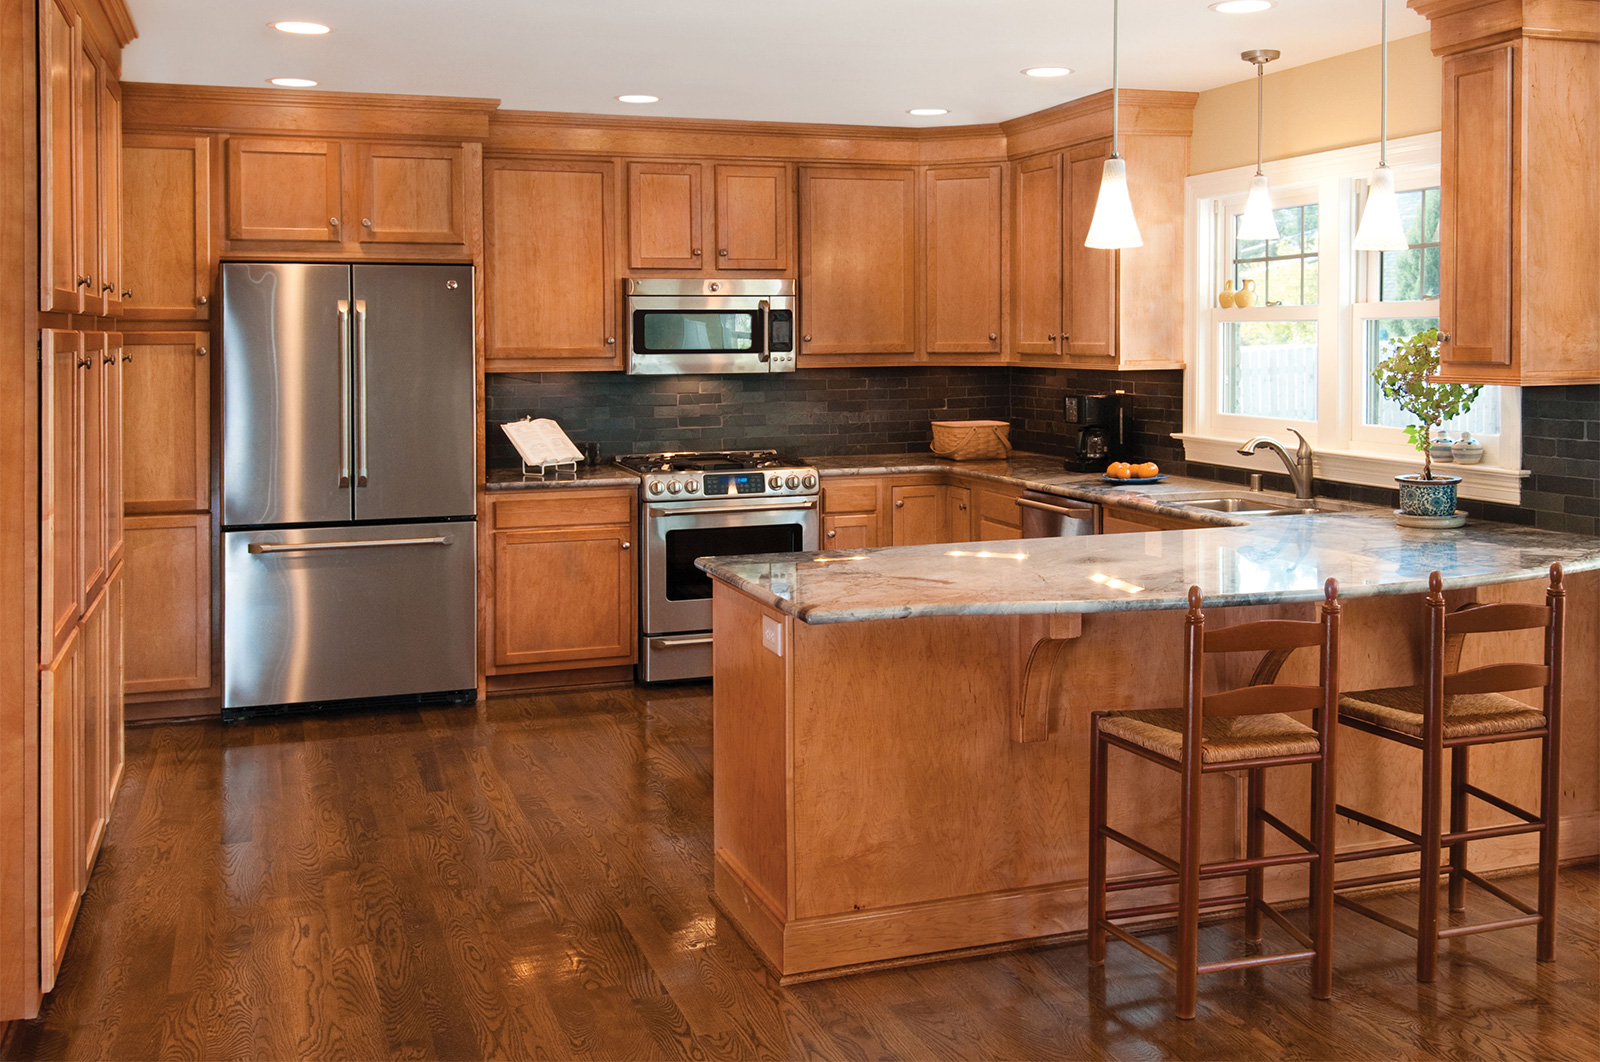 Kitchen cabinet refacing boston - Refinishing